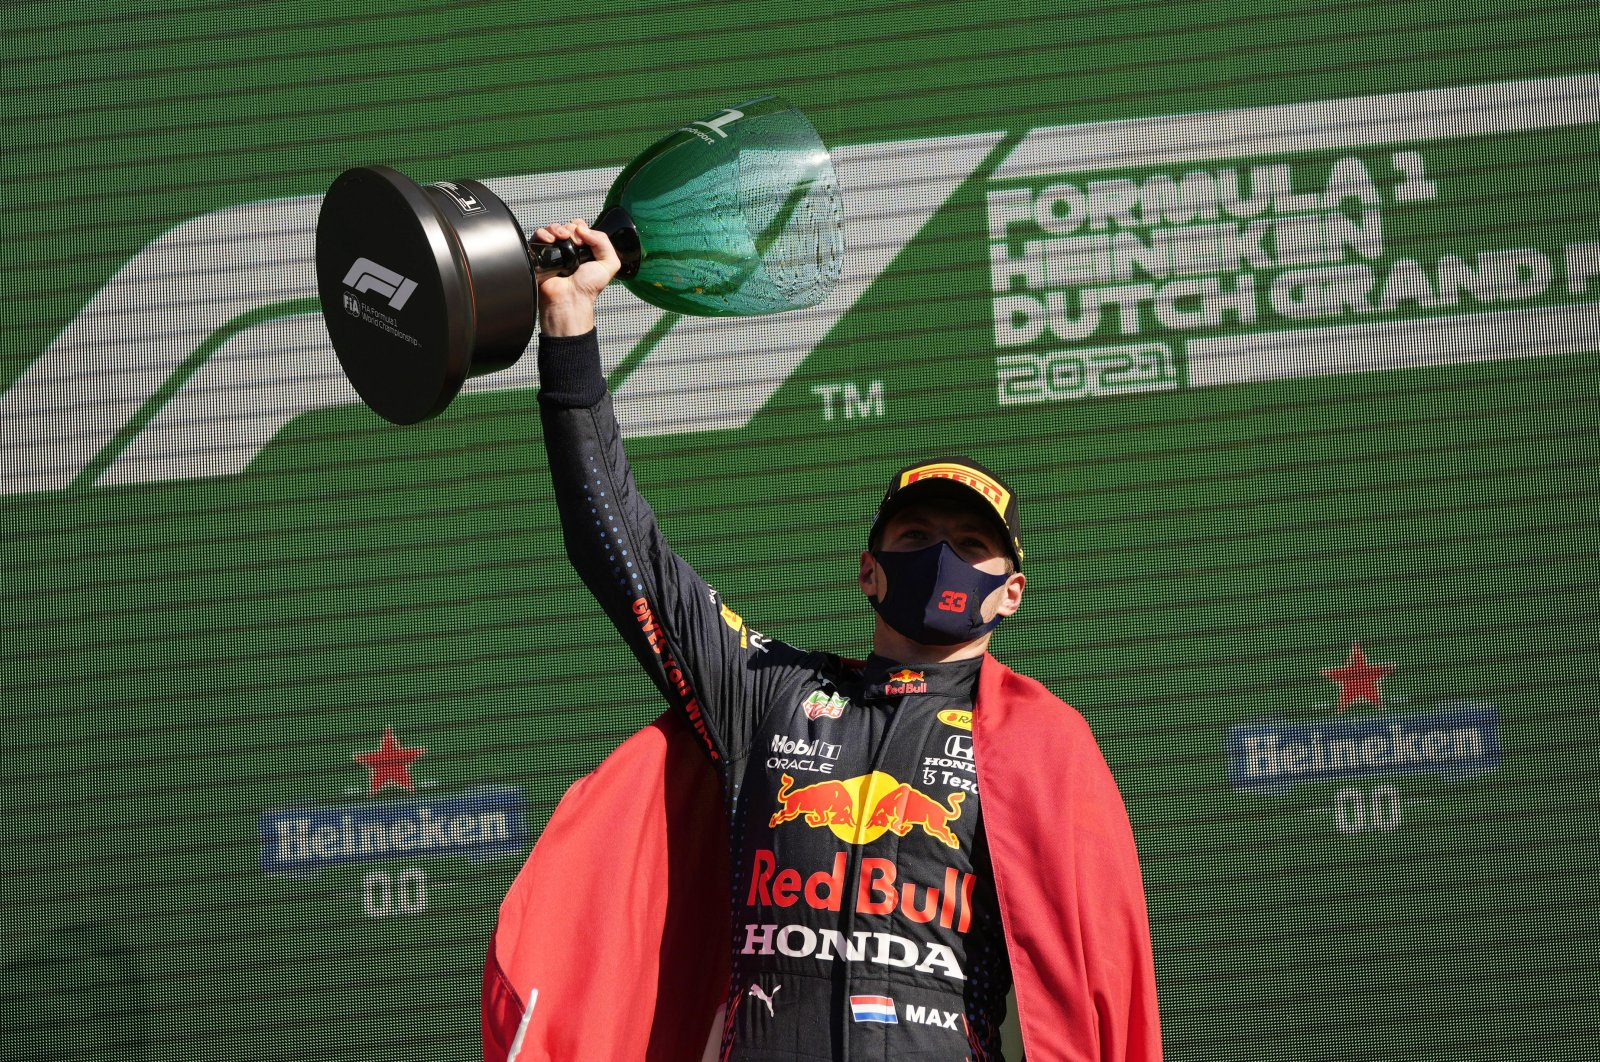 Red Bull's Max Verstappen celebrates on the podium after winning the Formula One Dutch Grand Prix at the Circuit Zandvoort, Zandvoort, the Netherlands, Sept. 5, 2021. (Reuters Photo)